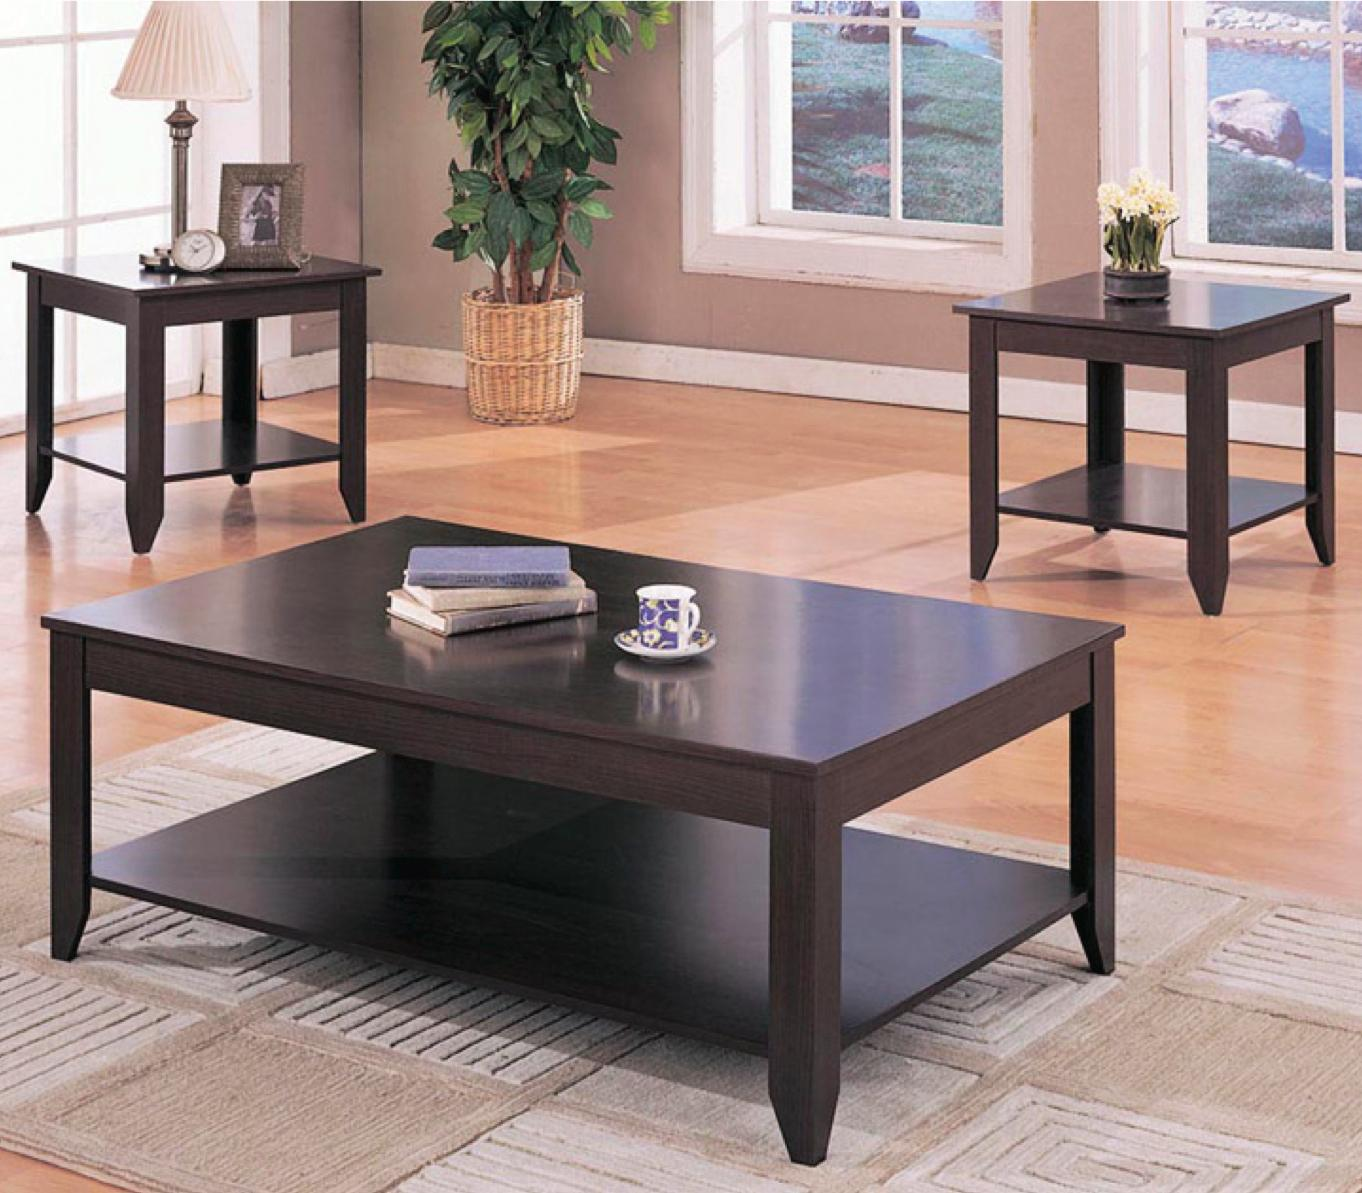 3 Piece Occasional Table Sets Contemporary Set With Shelves